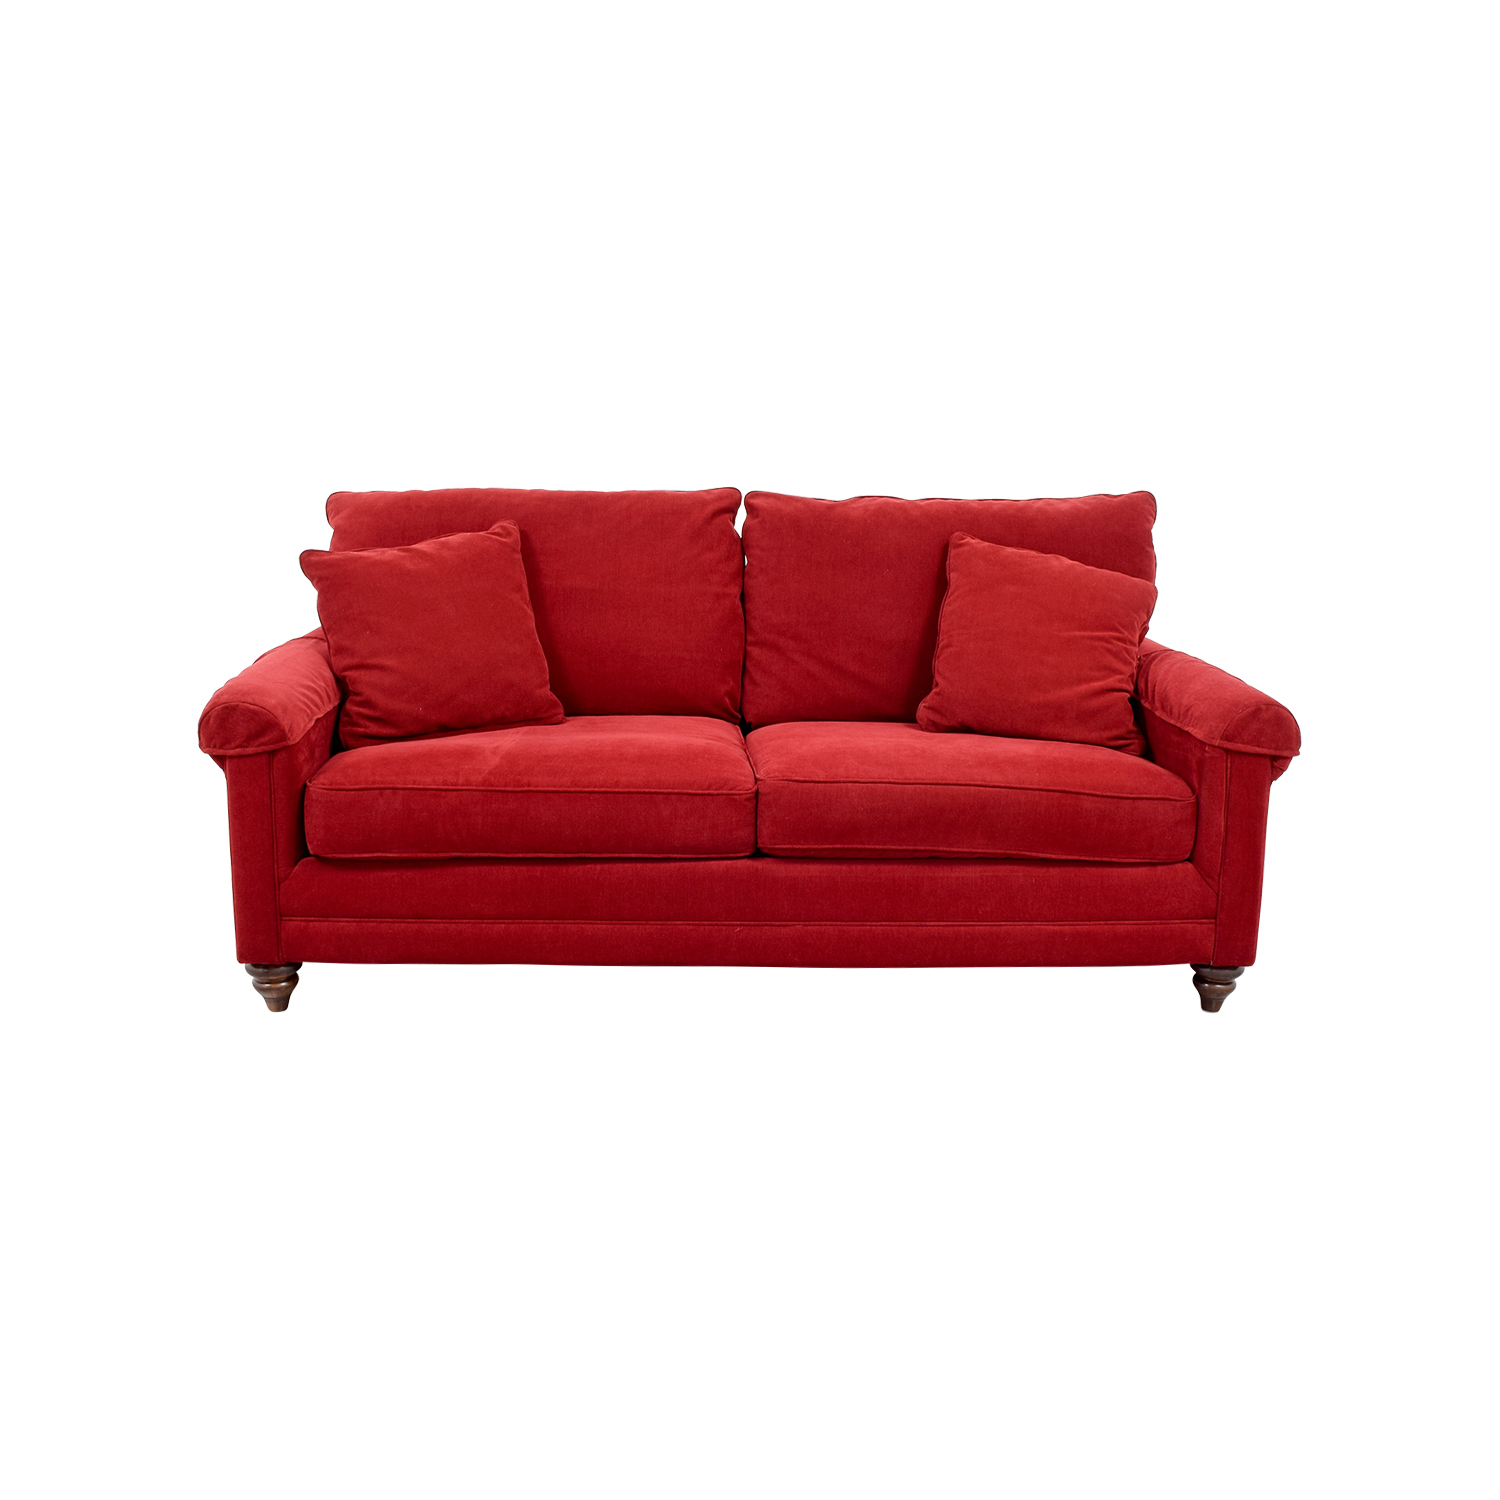 88% OFF - Bassett Furniture Bassett Red Curved Arm Two-Cushion Couch / Sofas